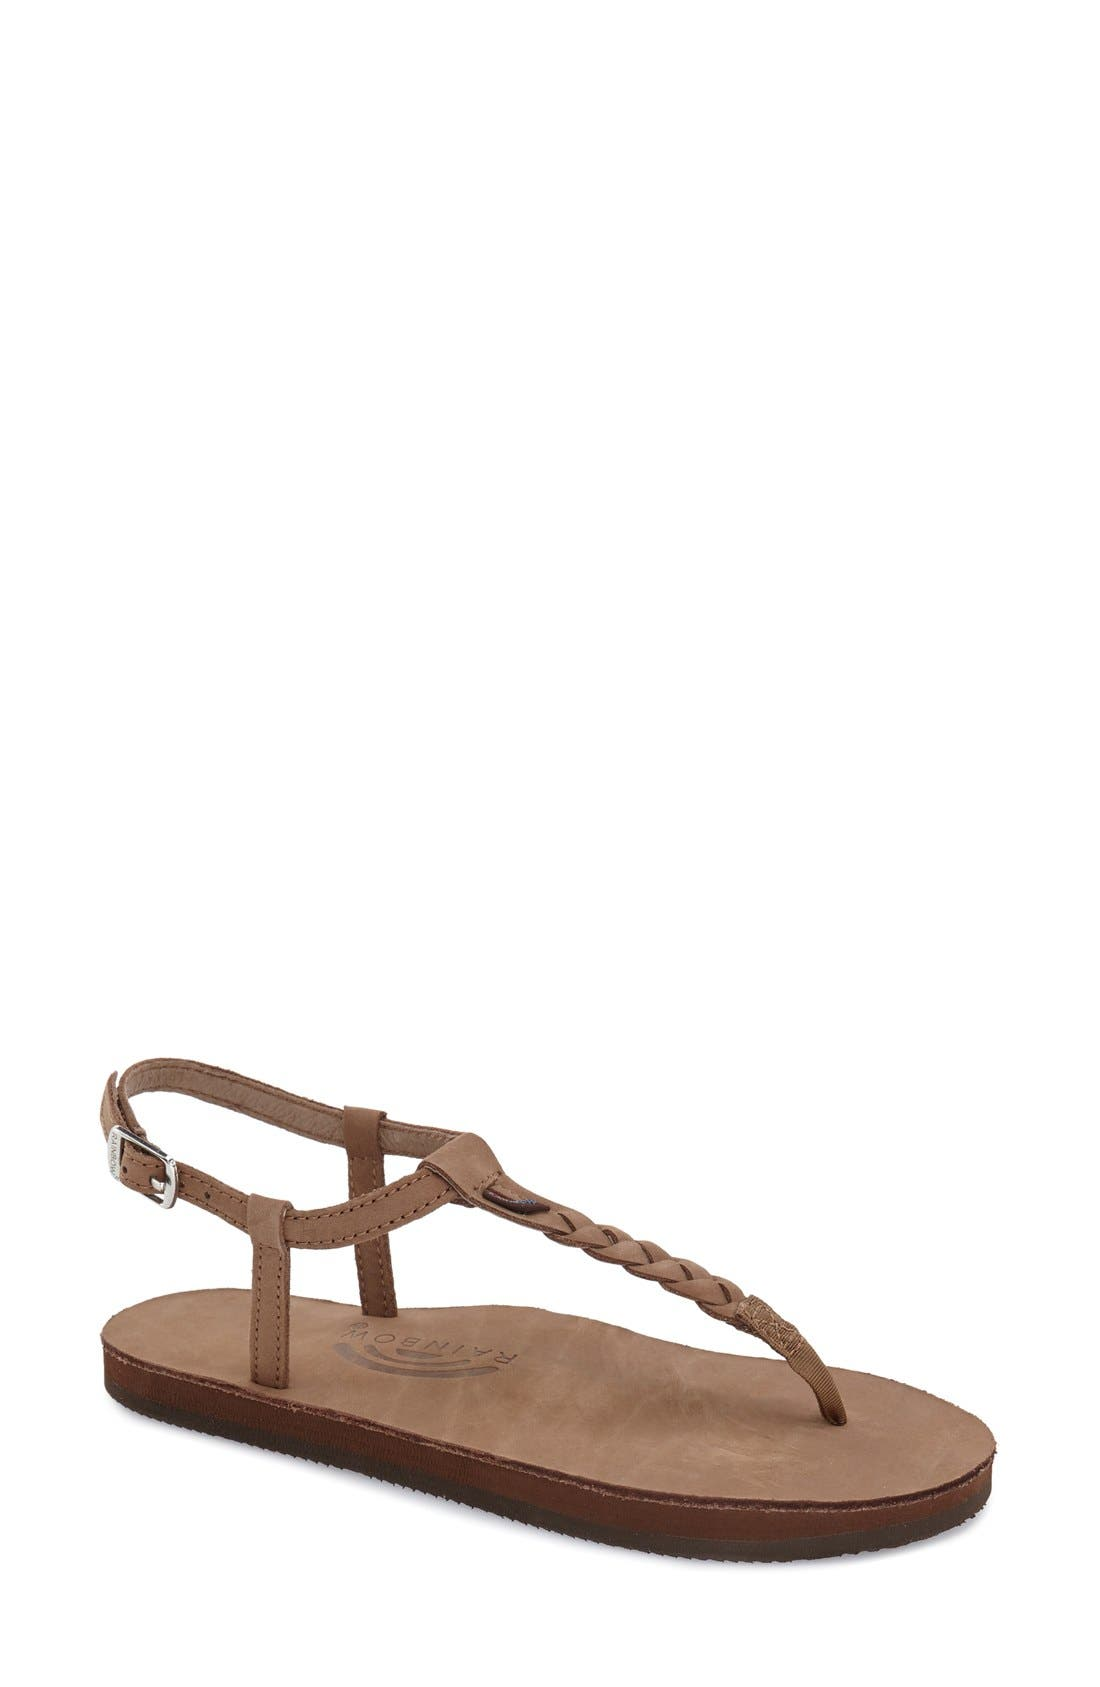 'T-Street' Braided T-Strap Sandal,                         Main,                         color, Dark Brown